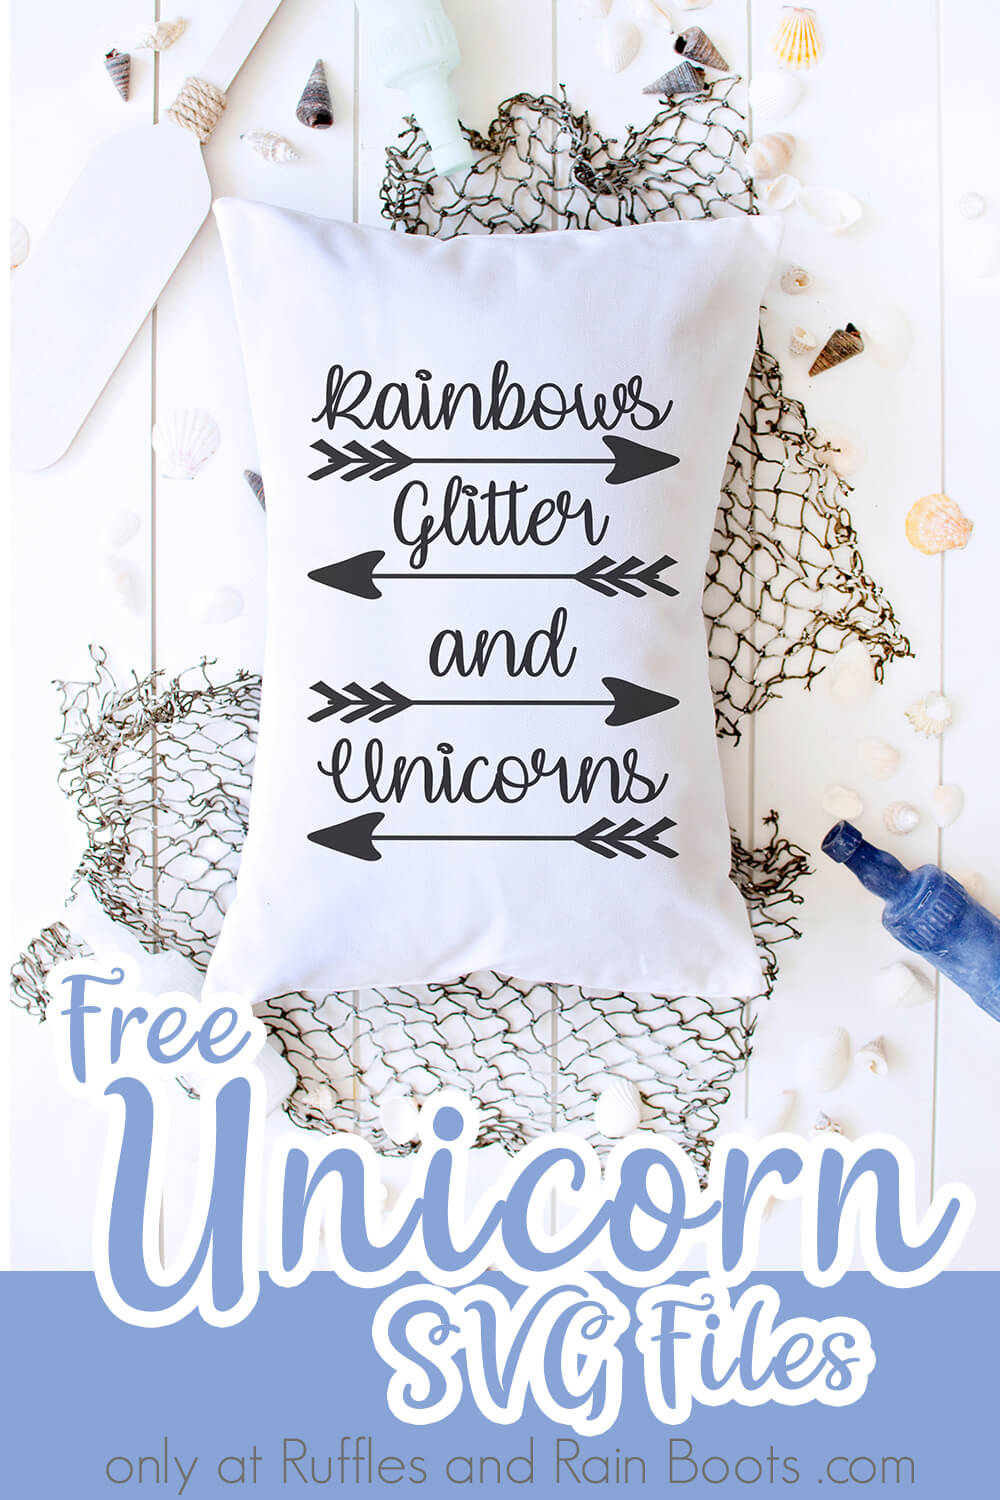 Rainbows Glitter and Unicorns free unicorn cut file for Silhouette on pillow laying on a fishing net with an oar and blue bottle on a white wood background with text which reads free unicorn svg files